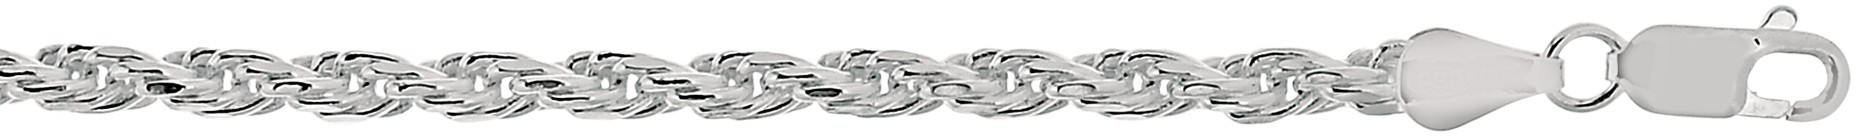 "22"" 3.6mm (1/7"") Textured Diamond Cut 925 Sterling Silver Rope Chain w/ Lobster Clasp - DISCONTINUED"